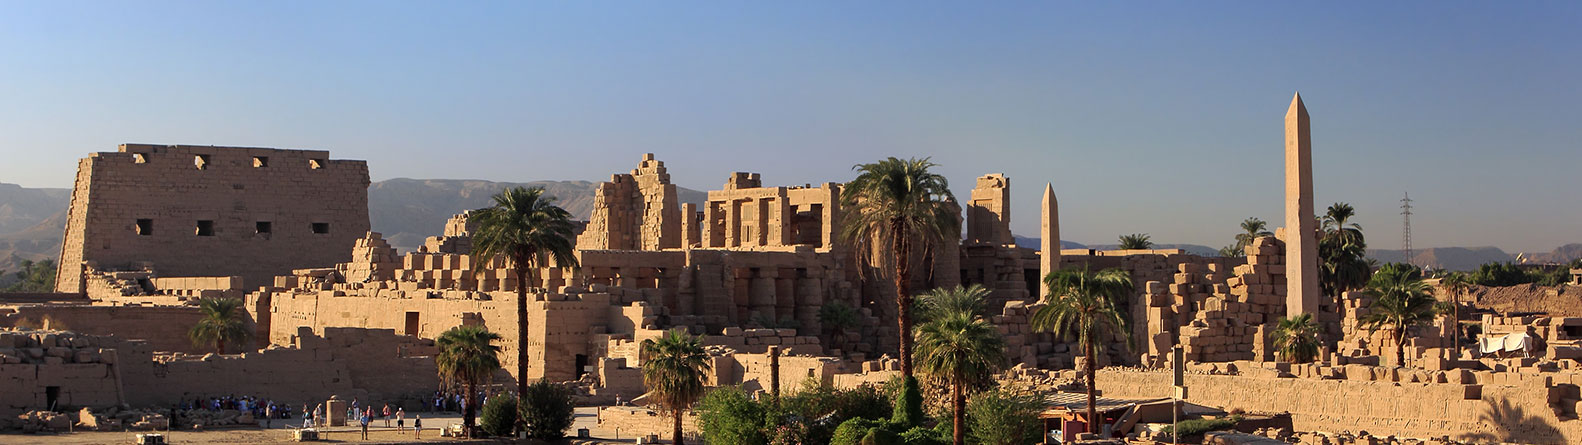 ANCIENT EGYPT & MIDDLE EAST SOCIETY